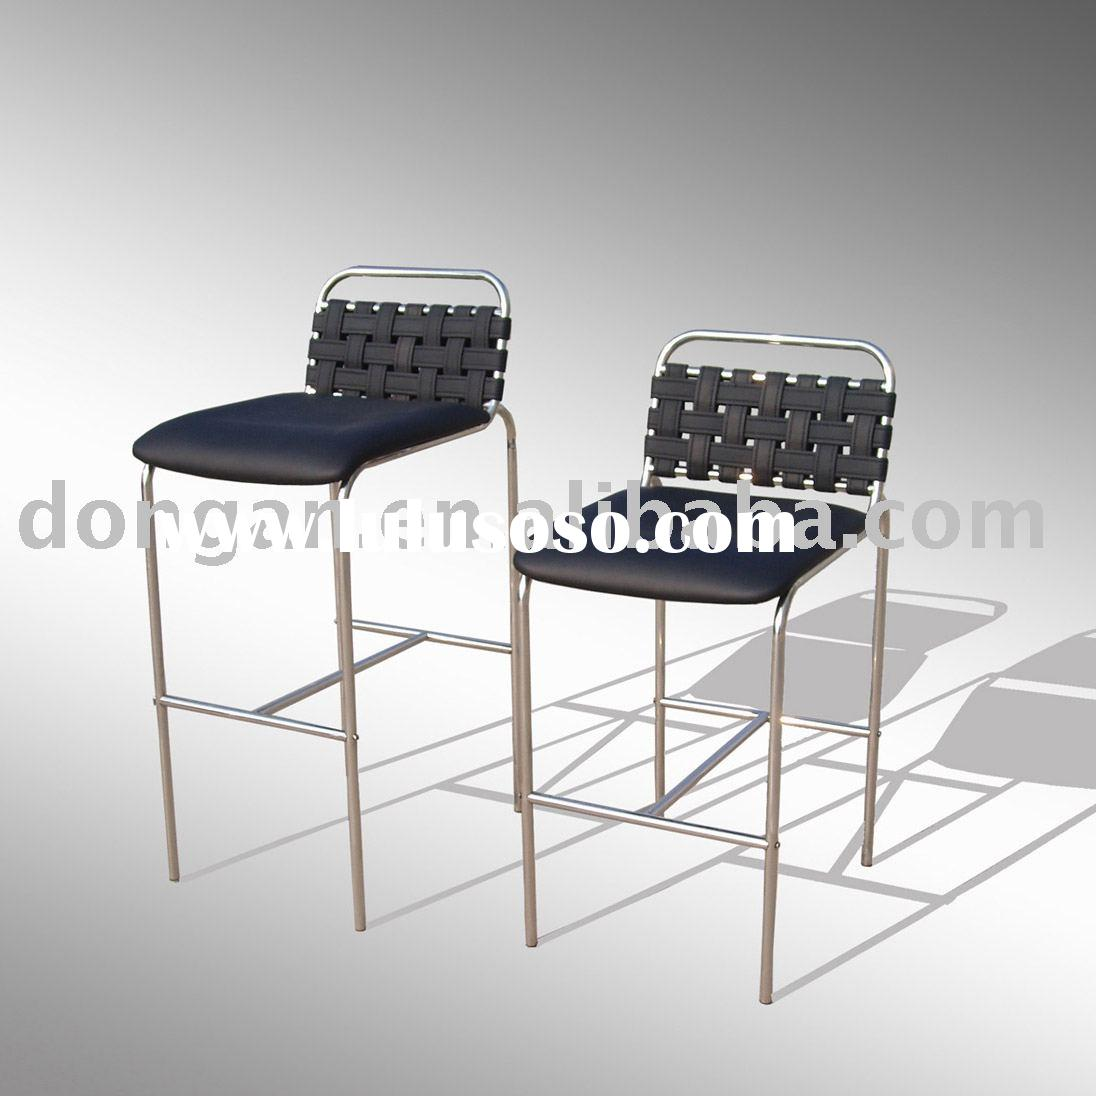 rebar chair sizes amish rocking stainless steel chairs